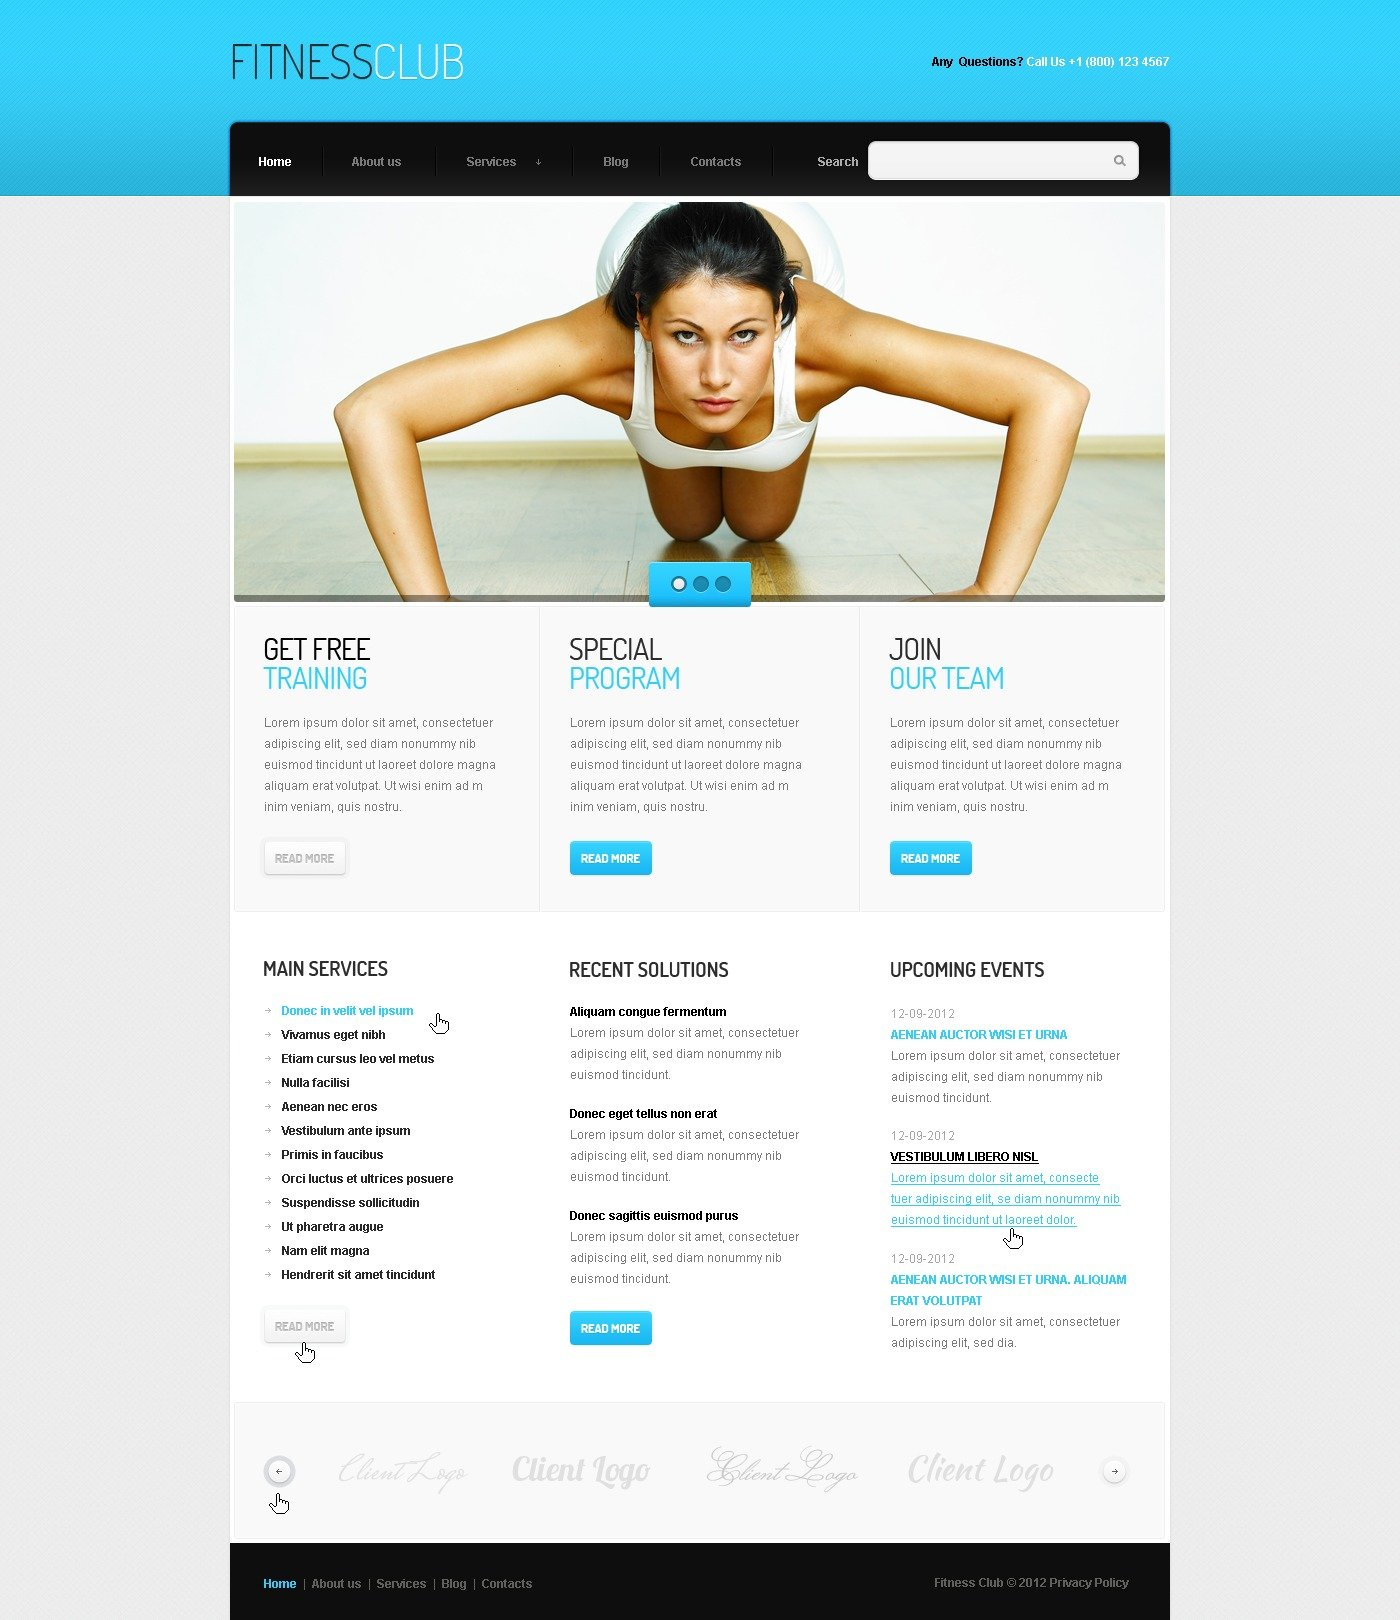 Free Fitness Newsletter Templates Boatjeremyeatonco - Online newsletter templates free